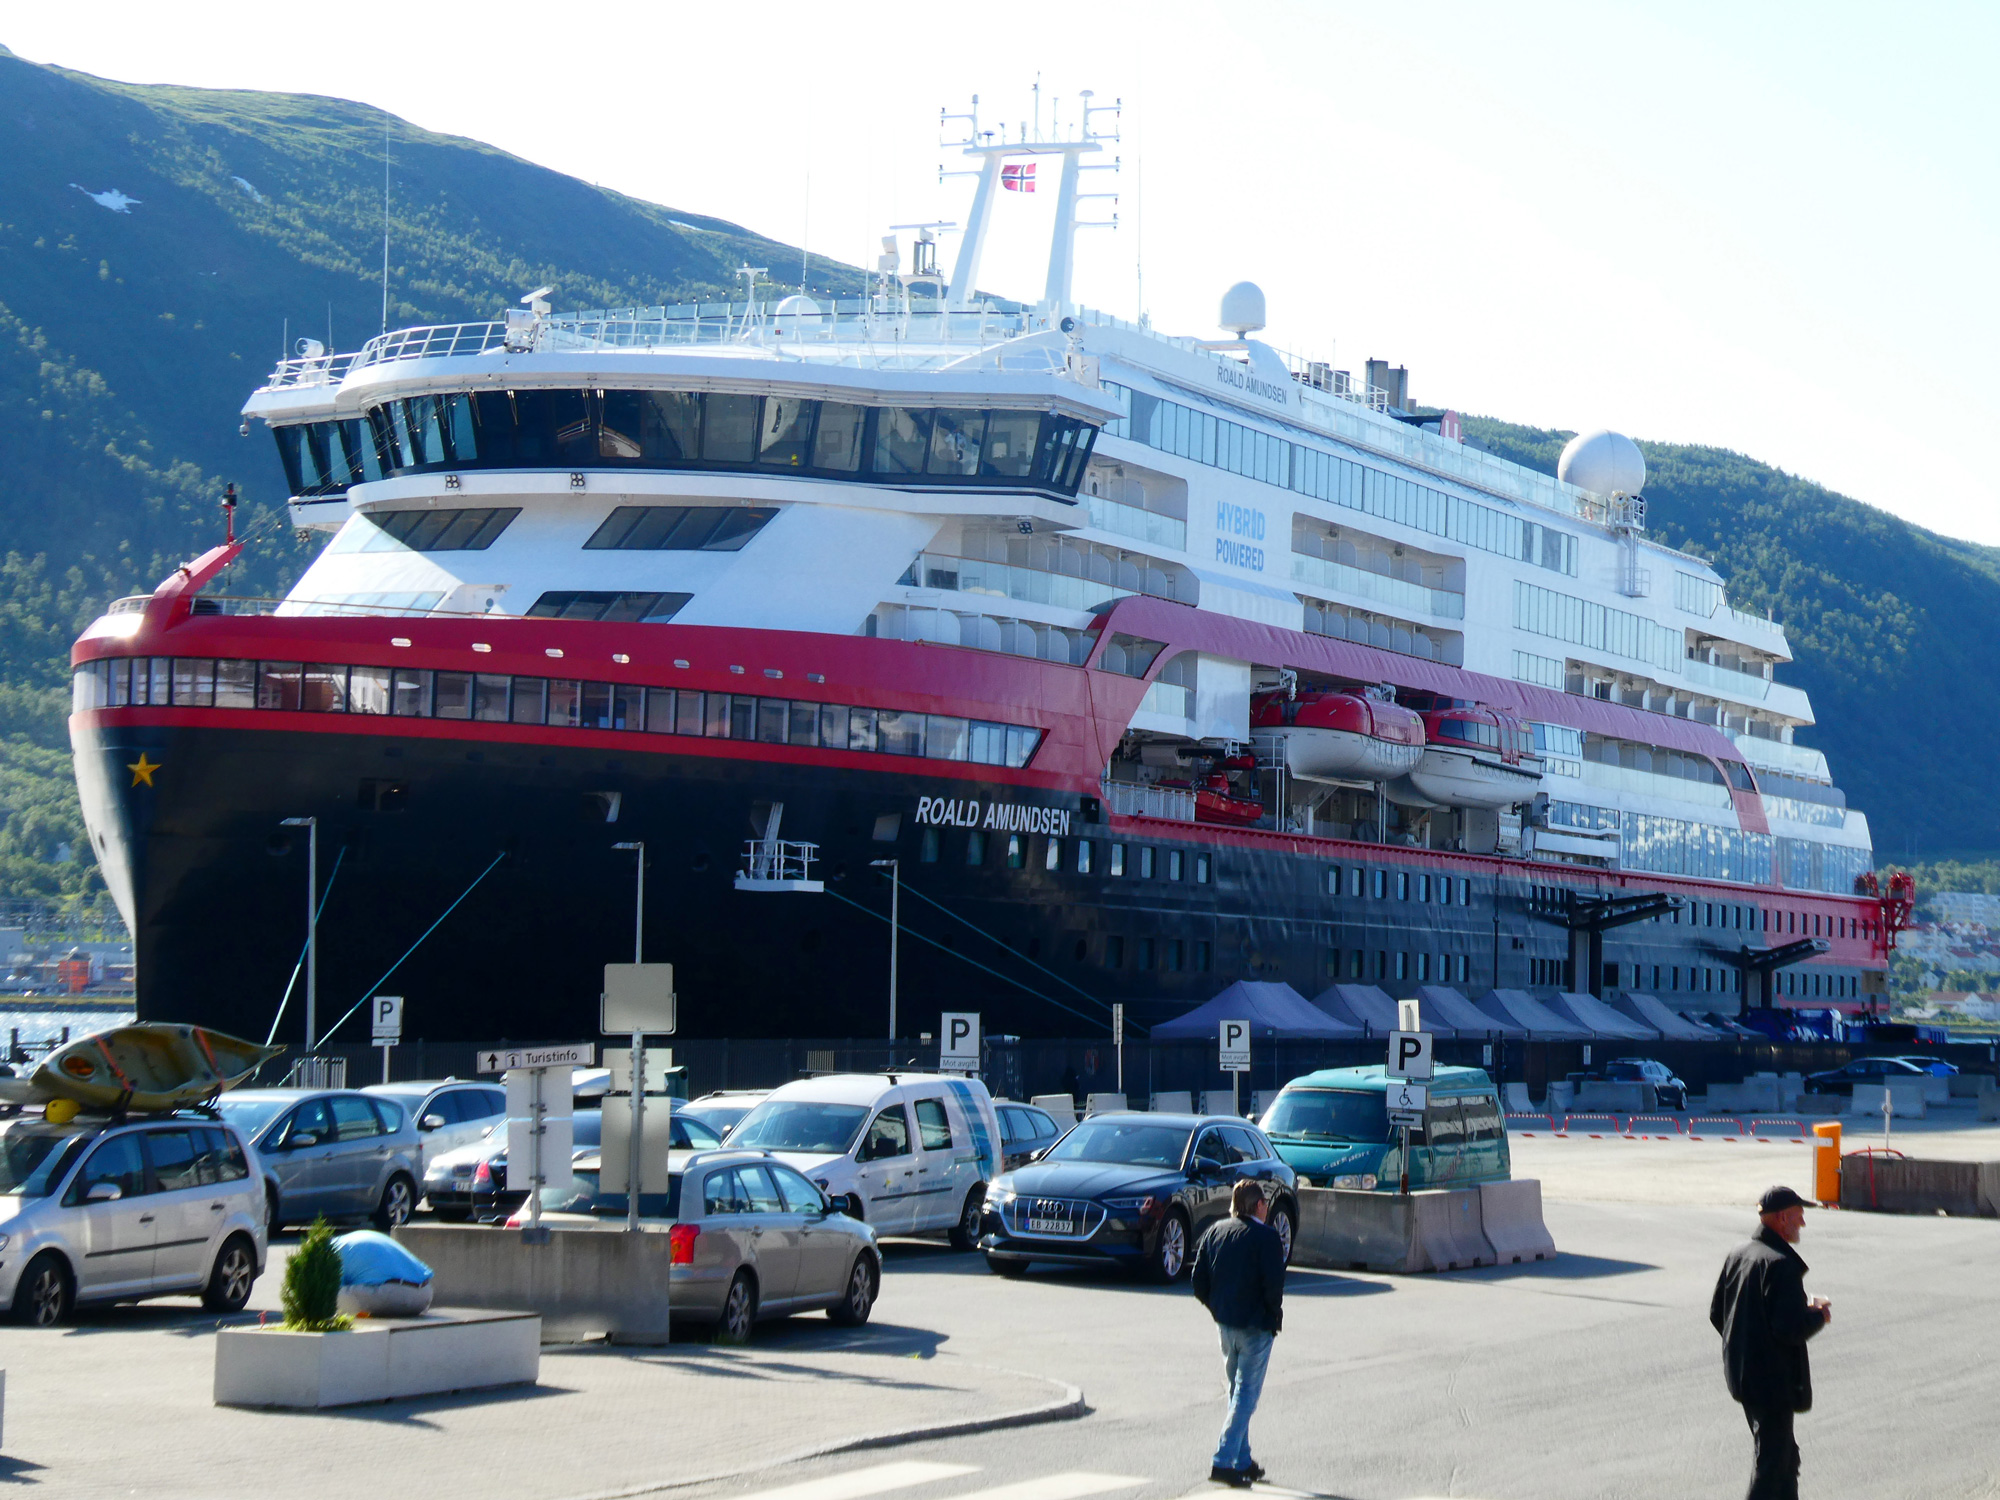 The MS Roald Amundsen is docked in Tromsö, Norway, on July 31.